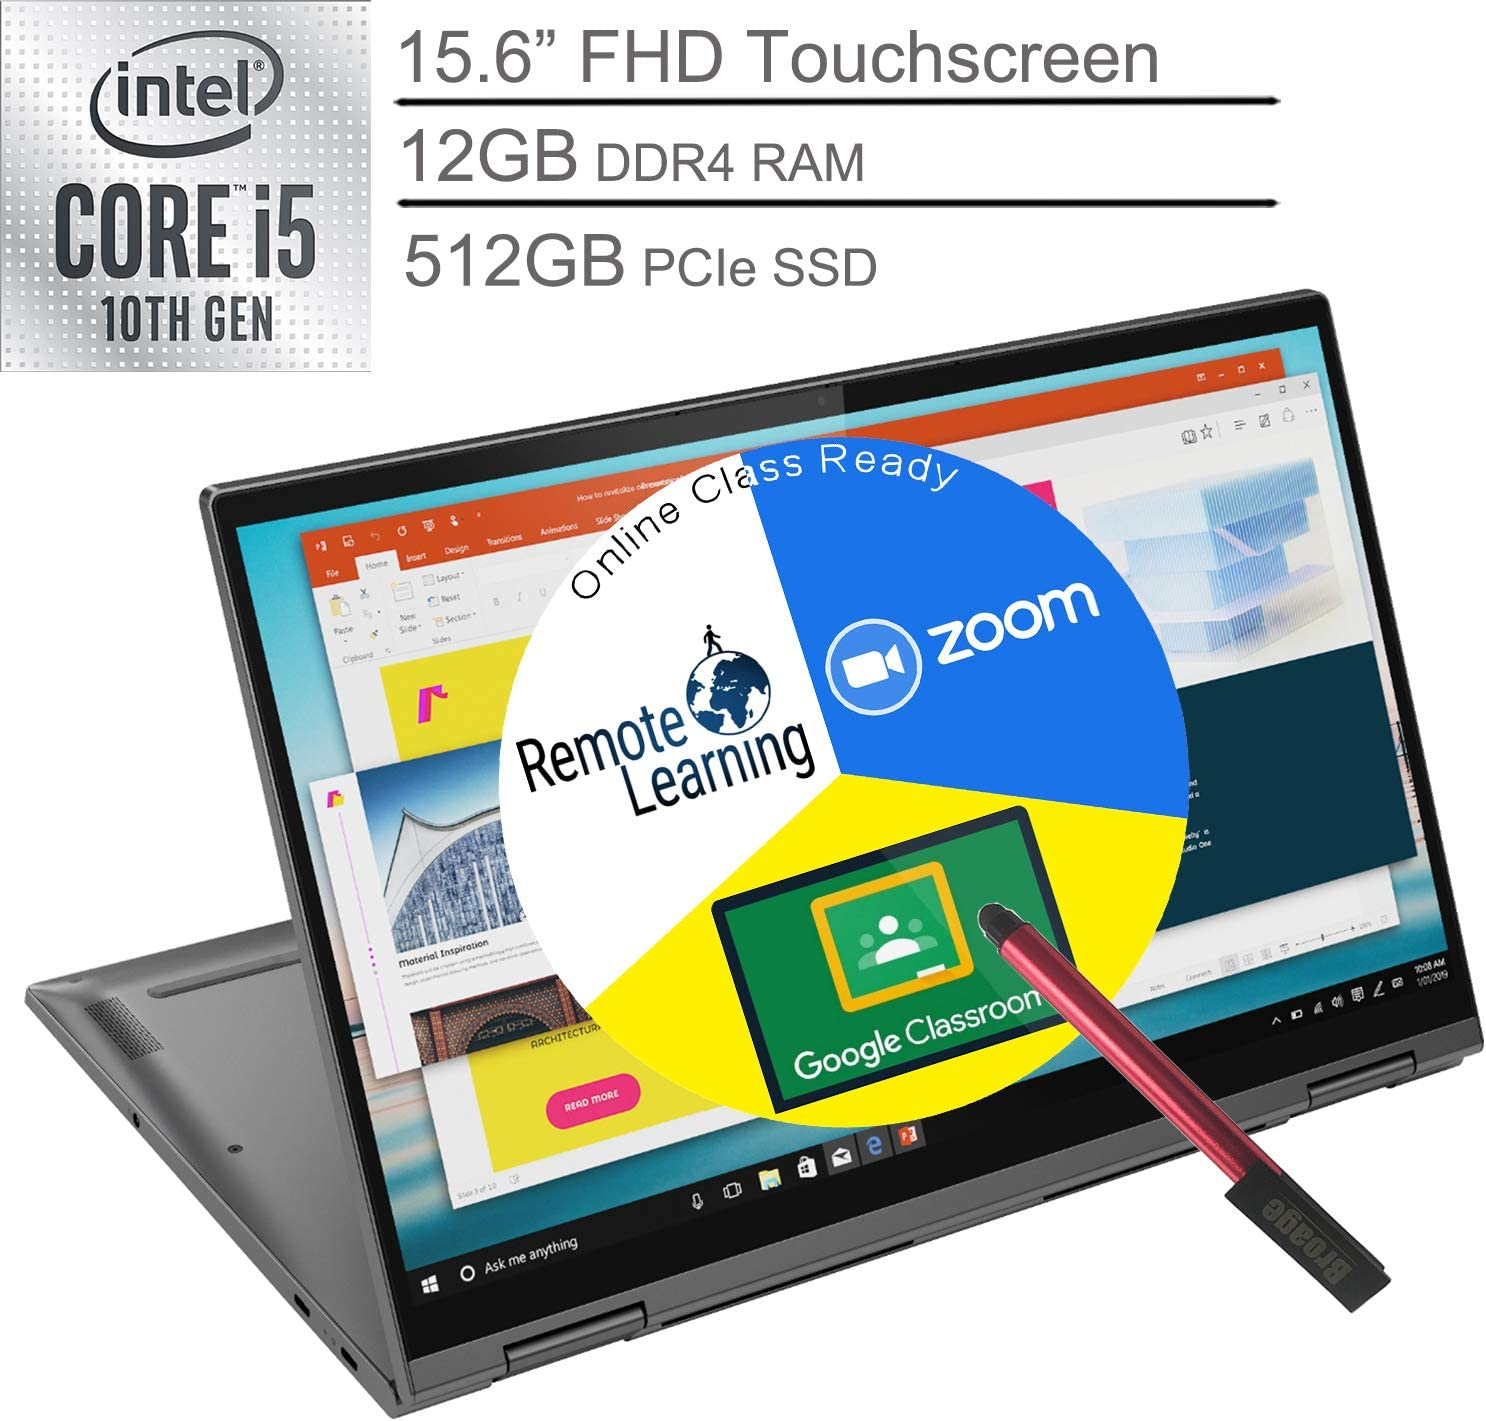 "2020 Lenovo Yoga C740 2-in-1 15.6"" FHD Touchscreen Laptop Computer, Intel Quad-Core i5-10210U (Beats i7-7500U), 12GB DDR4 RAM, 512GB PCIe SSD, Windows 10, BROAGE 64GB Flash Stylus, Online Class Ready"